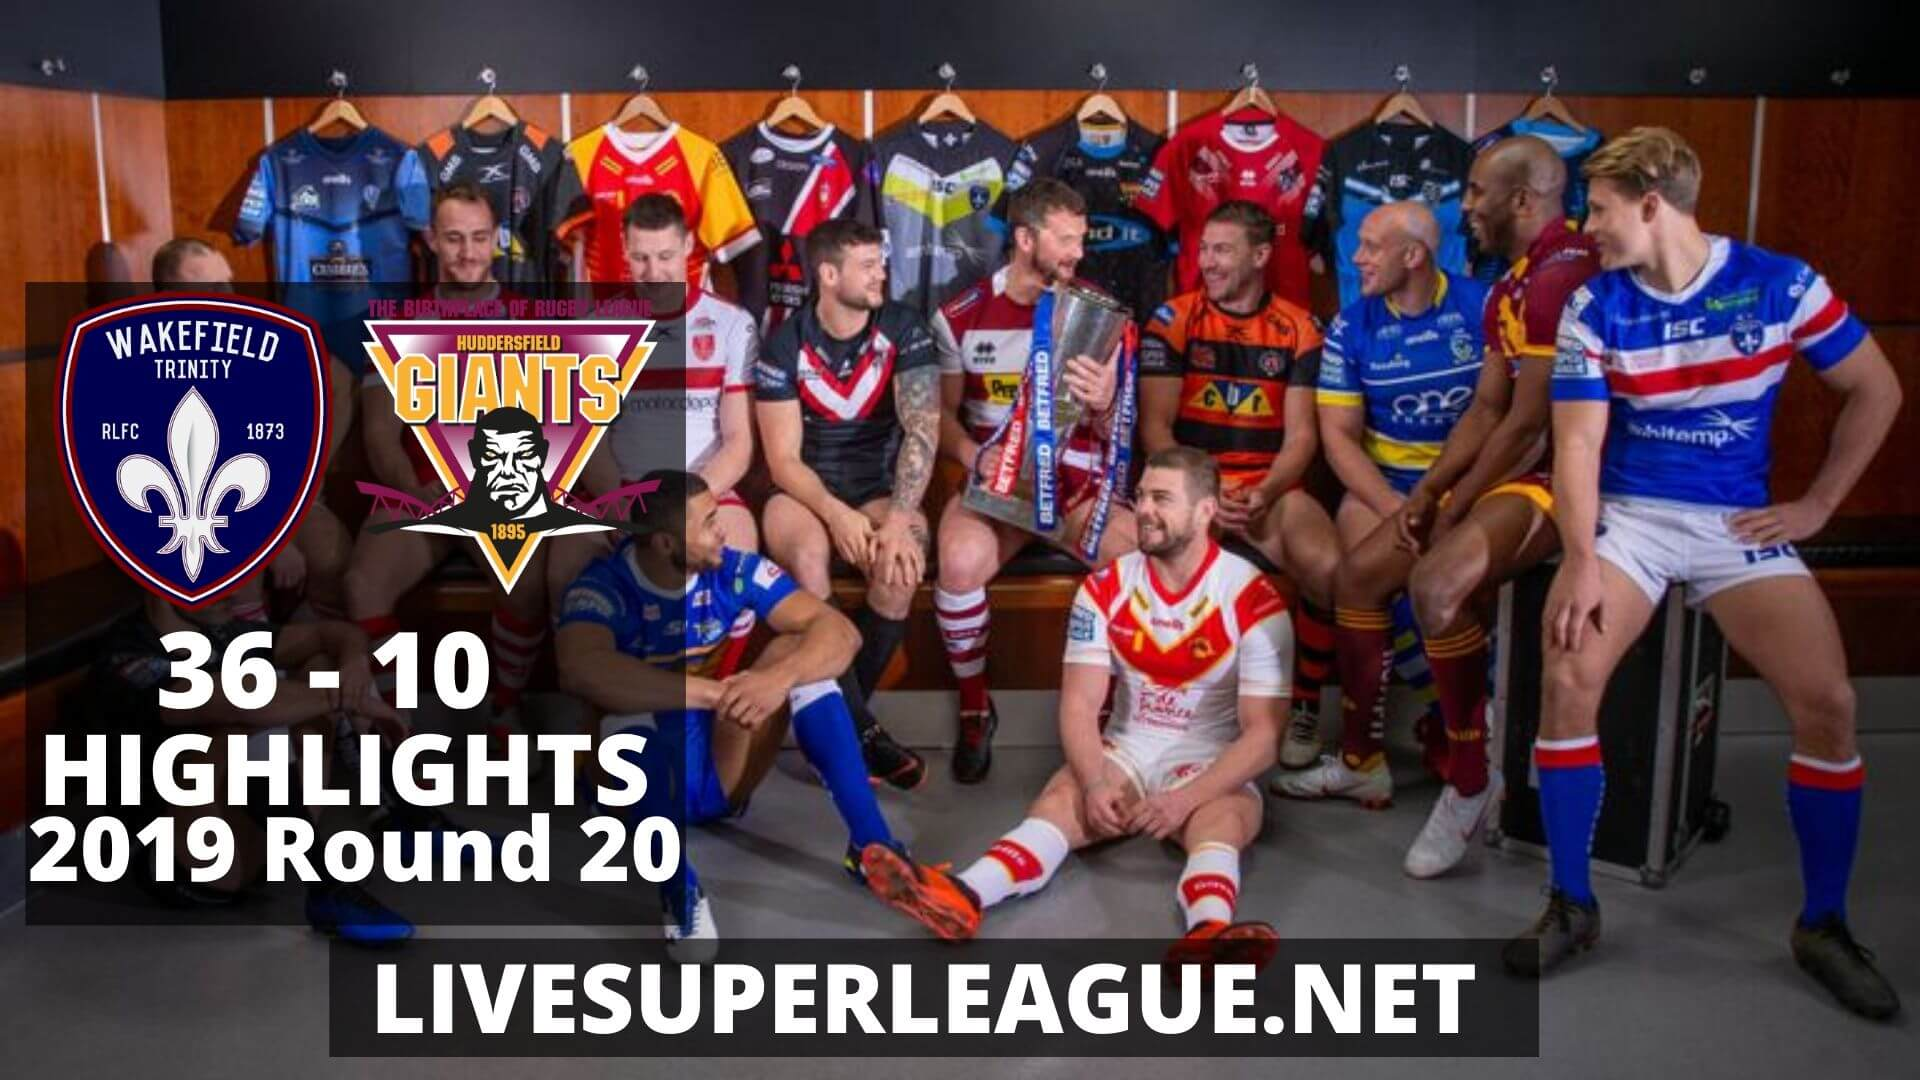 Wakefield Trinity Vs Huddersfield Giants Highlights 2019 Round 20